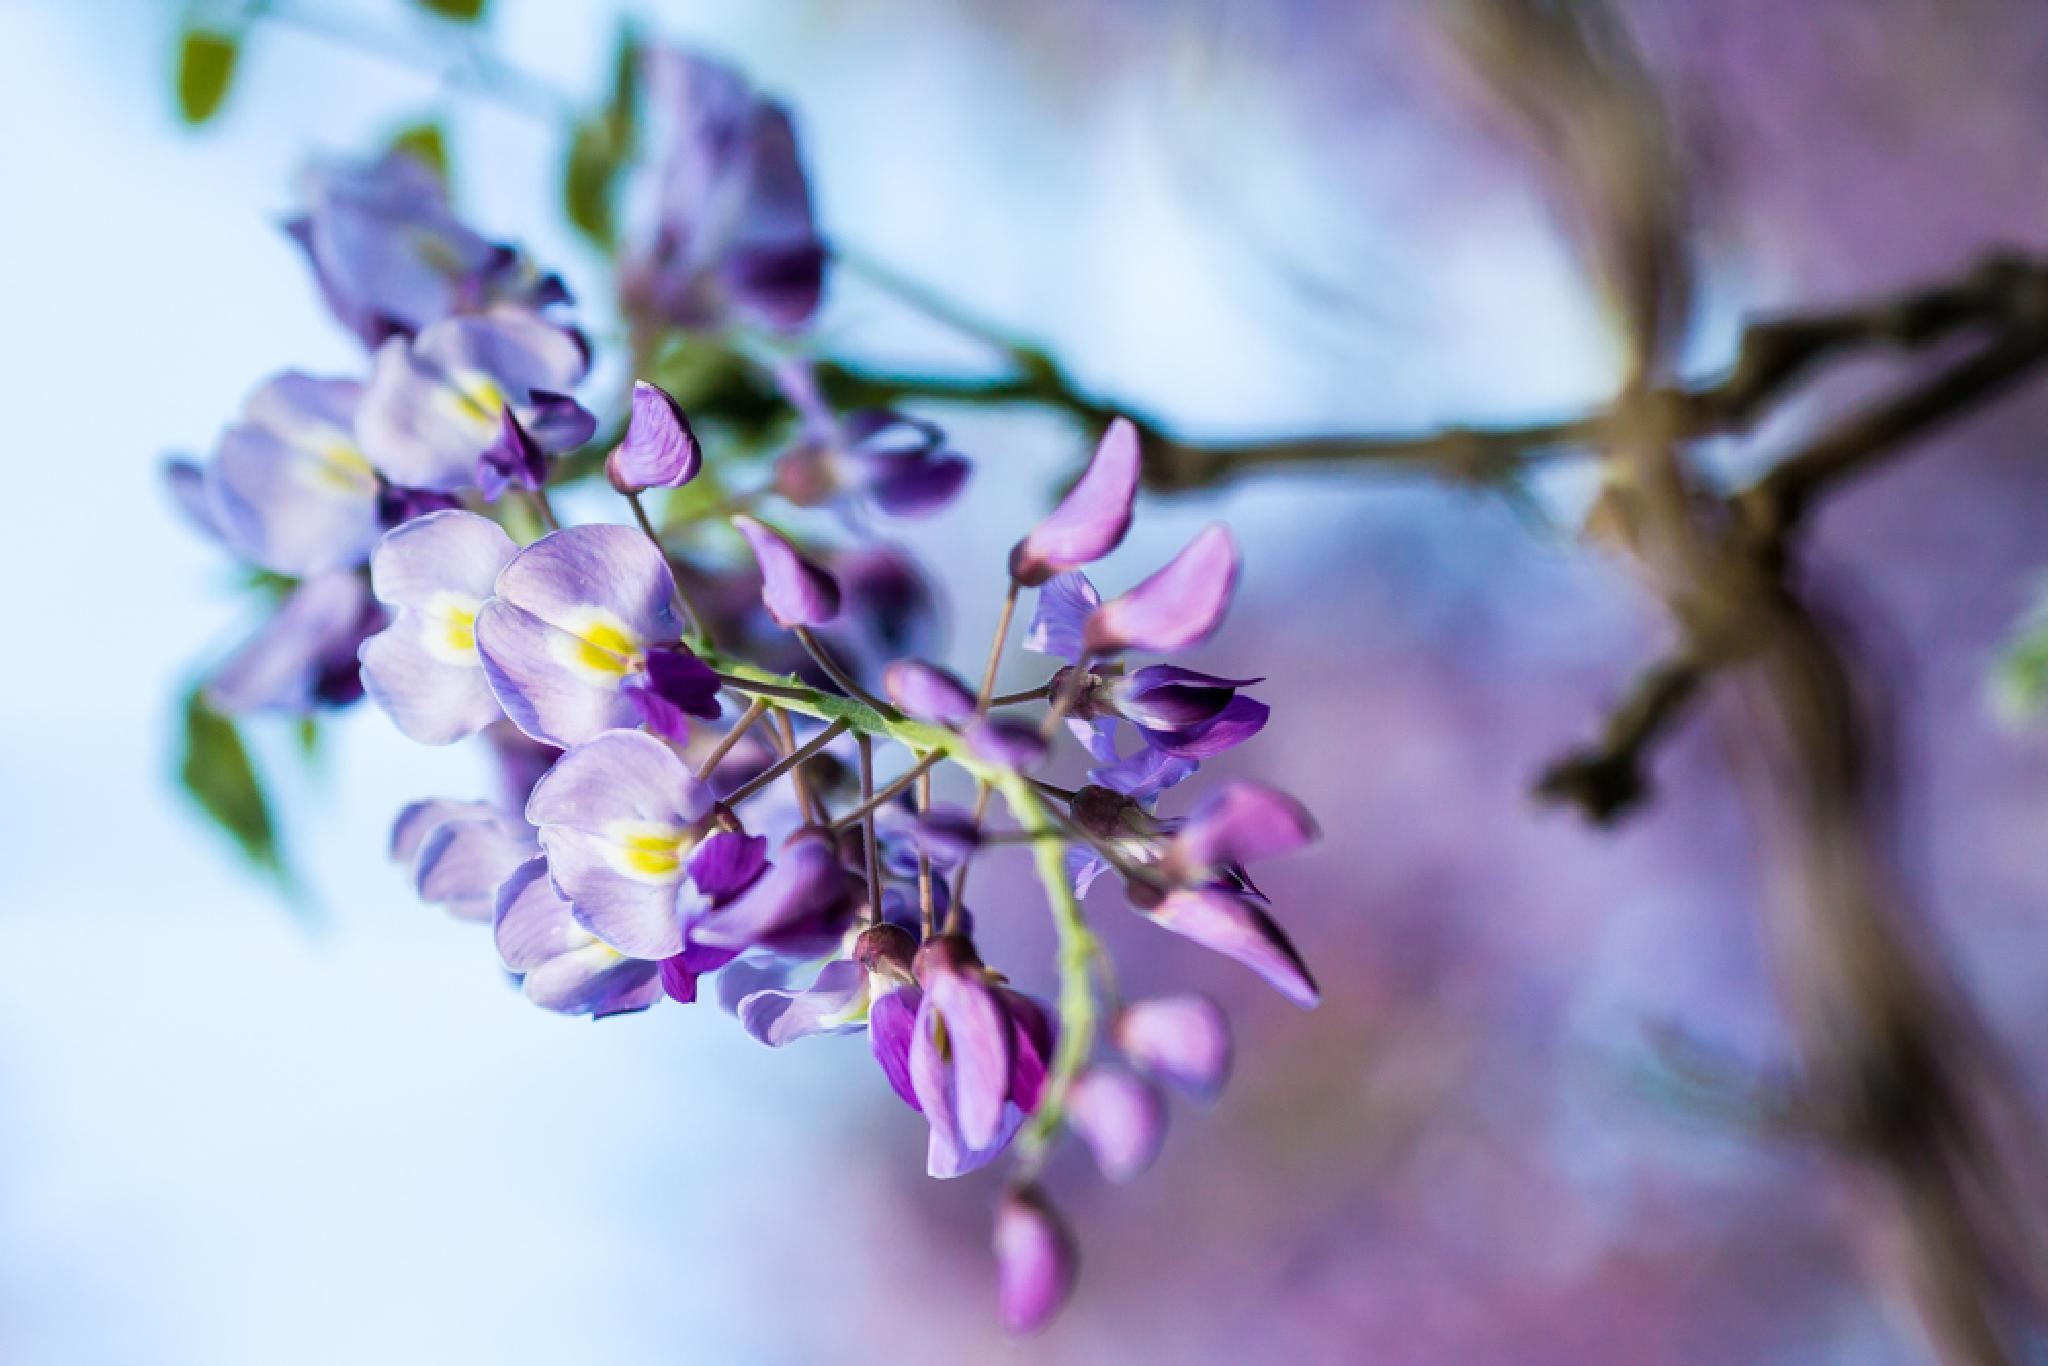 Wisteria by The Butterfly Huntress